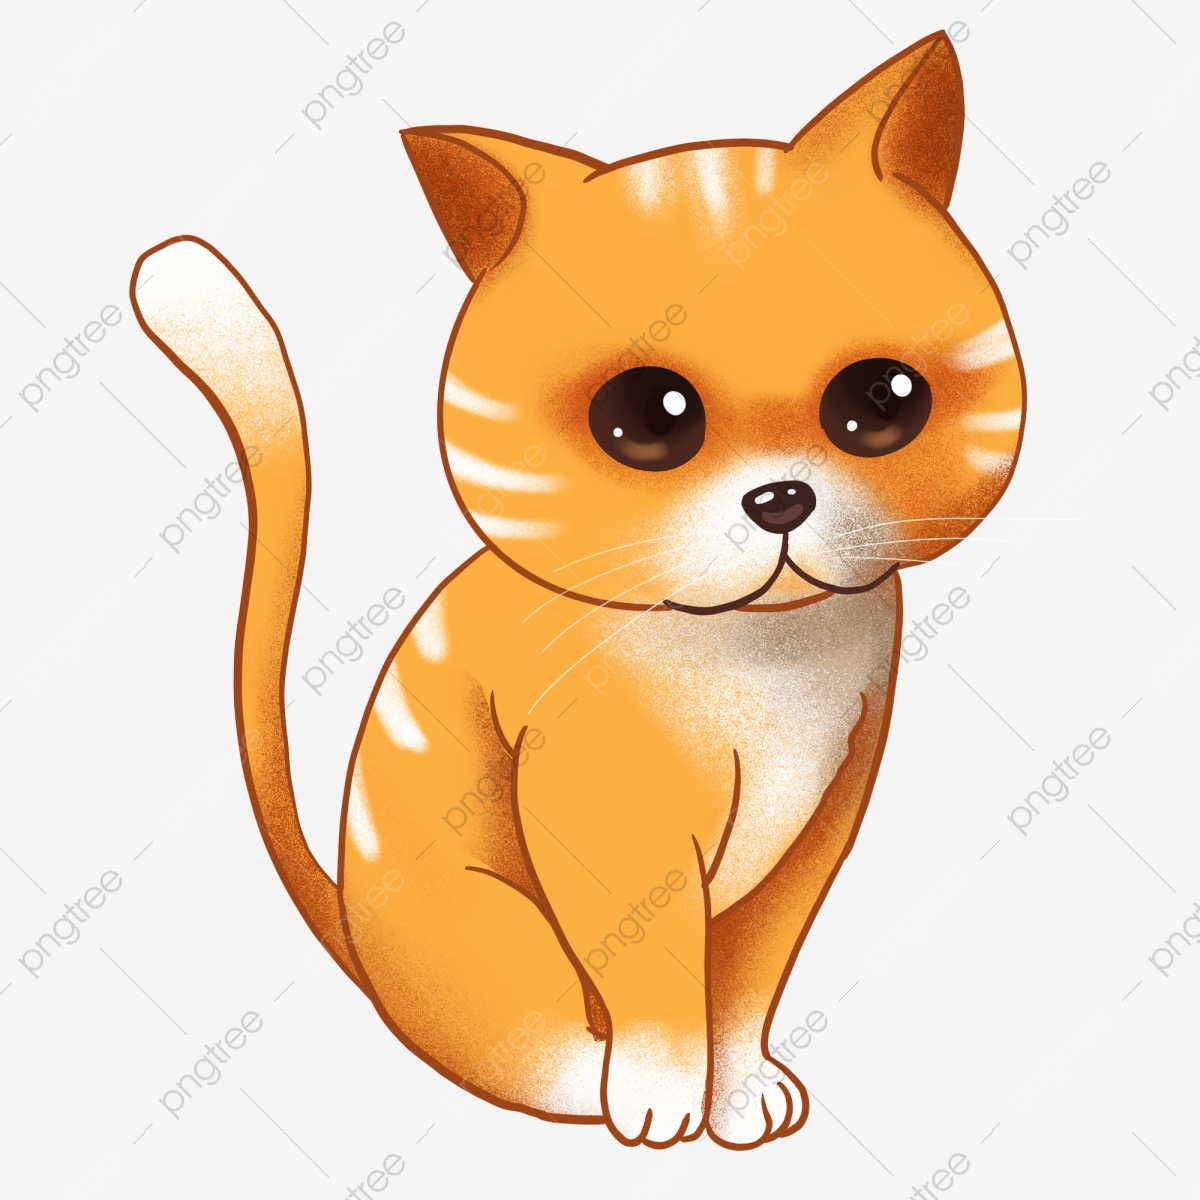 Cartoon Cat Png Vector Psd And Clipart With Transparent Background For Free Download Pngtree